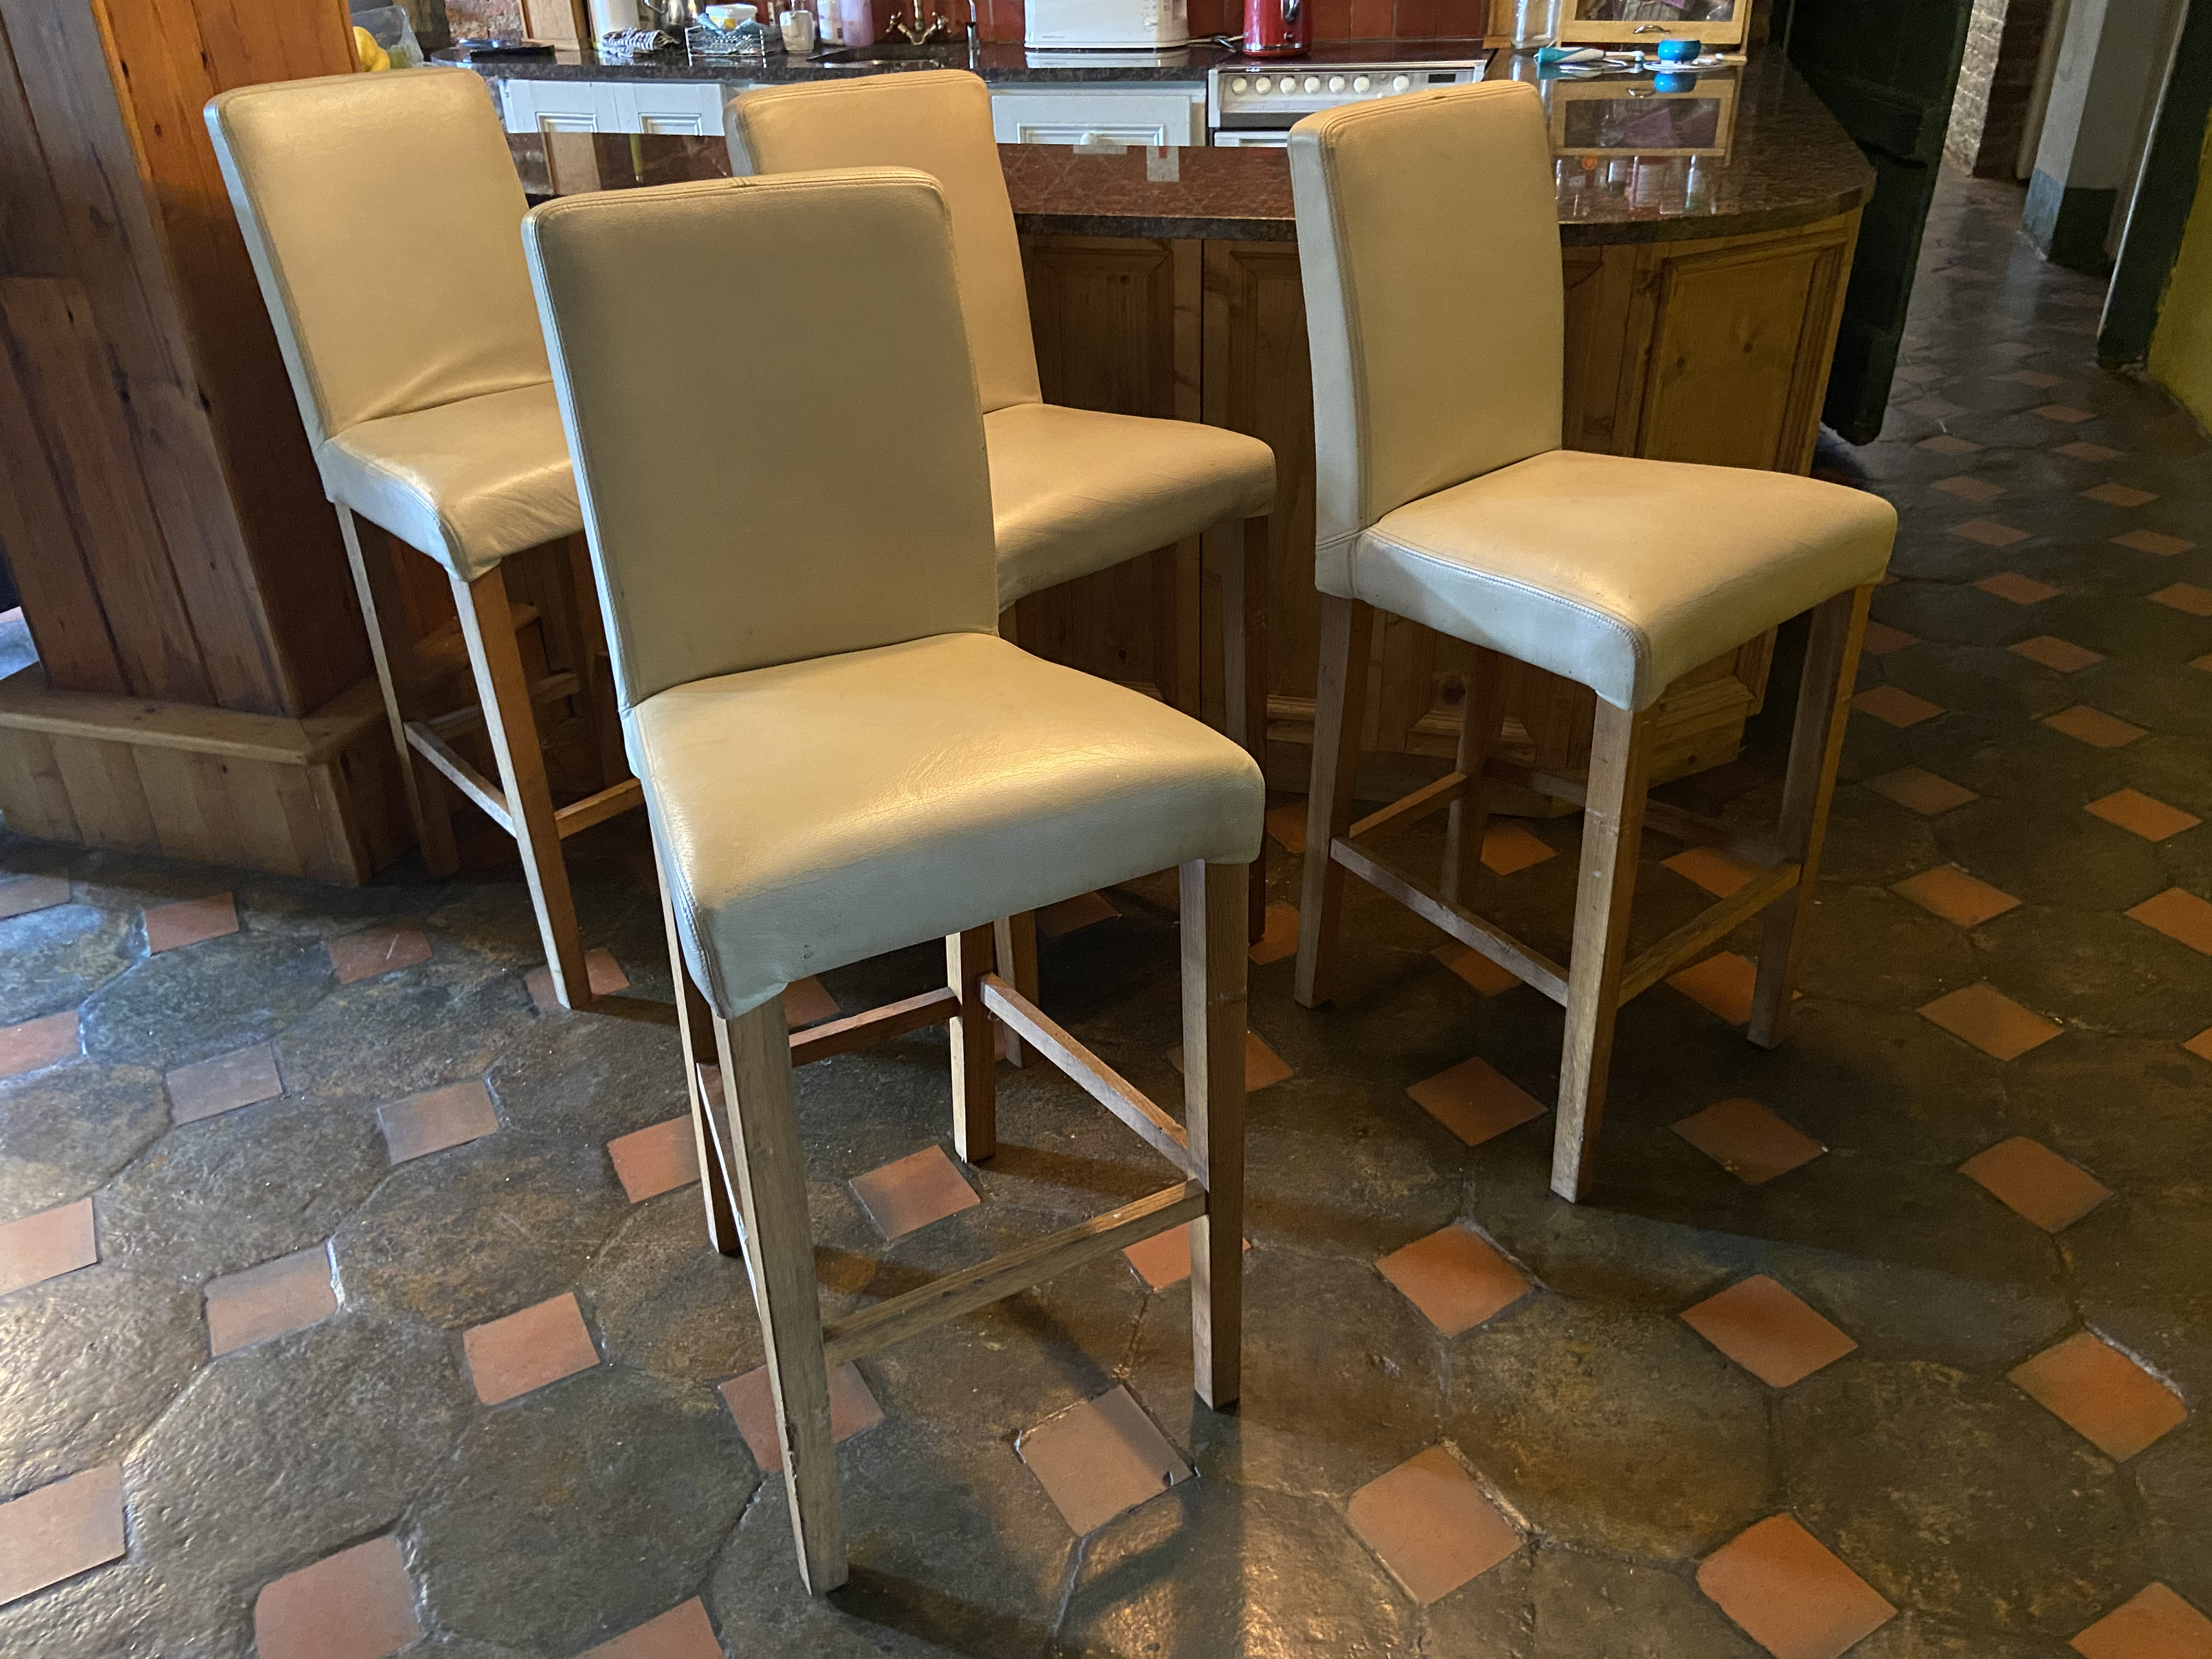 A set of 4 cream covered high Kitchen Bar Stools. (4)